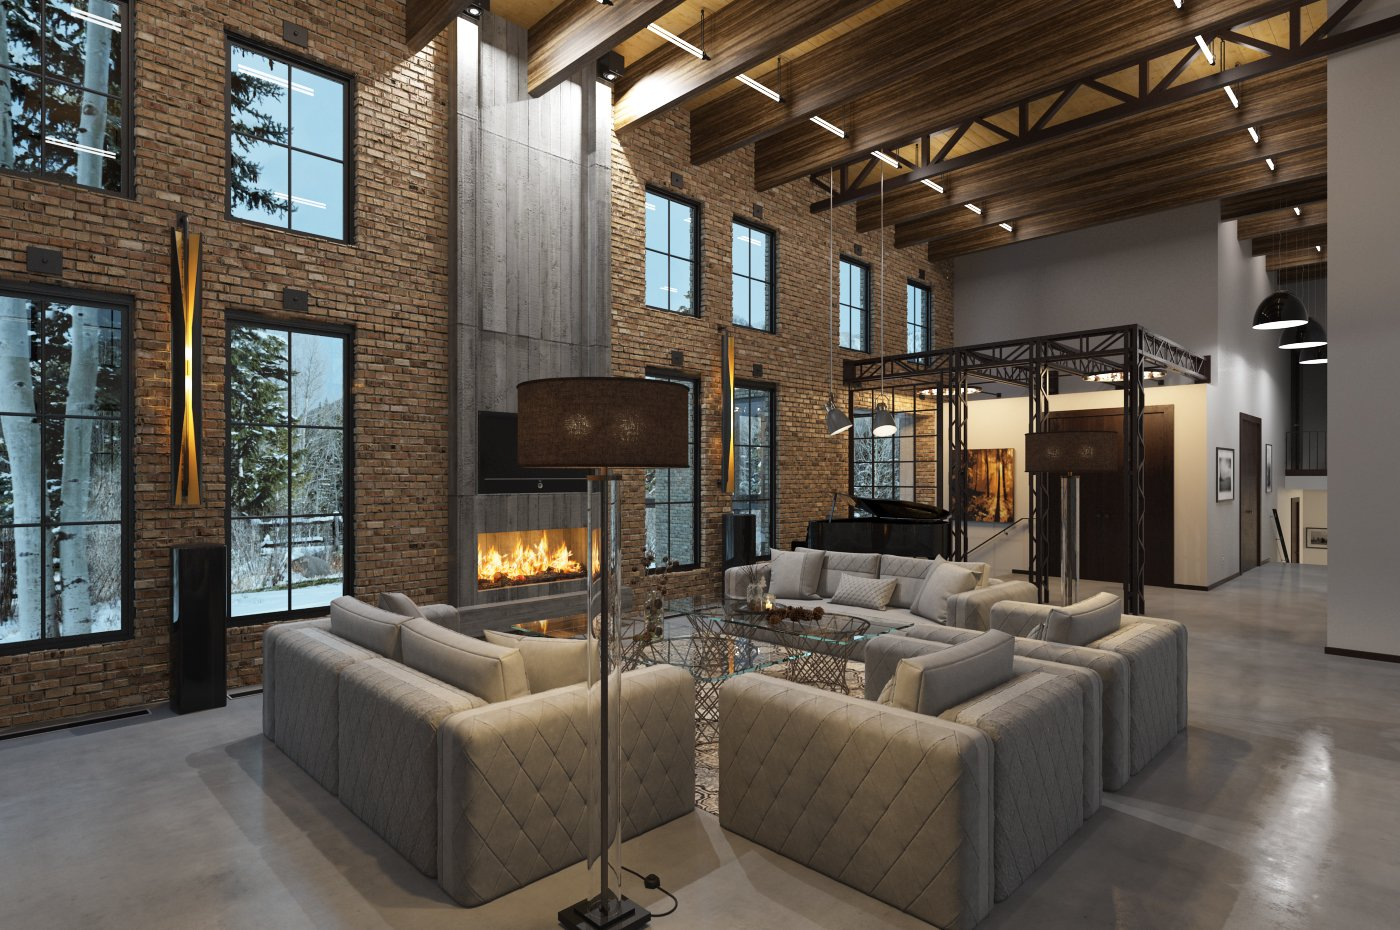 Industrial loft interior - Tip of the Week - Evermotion